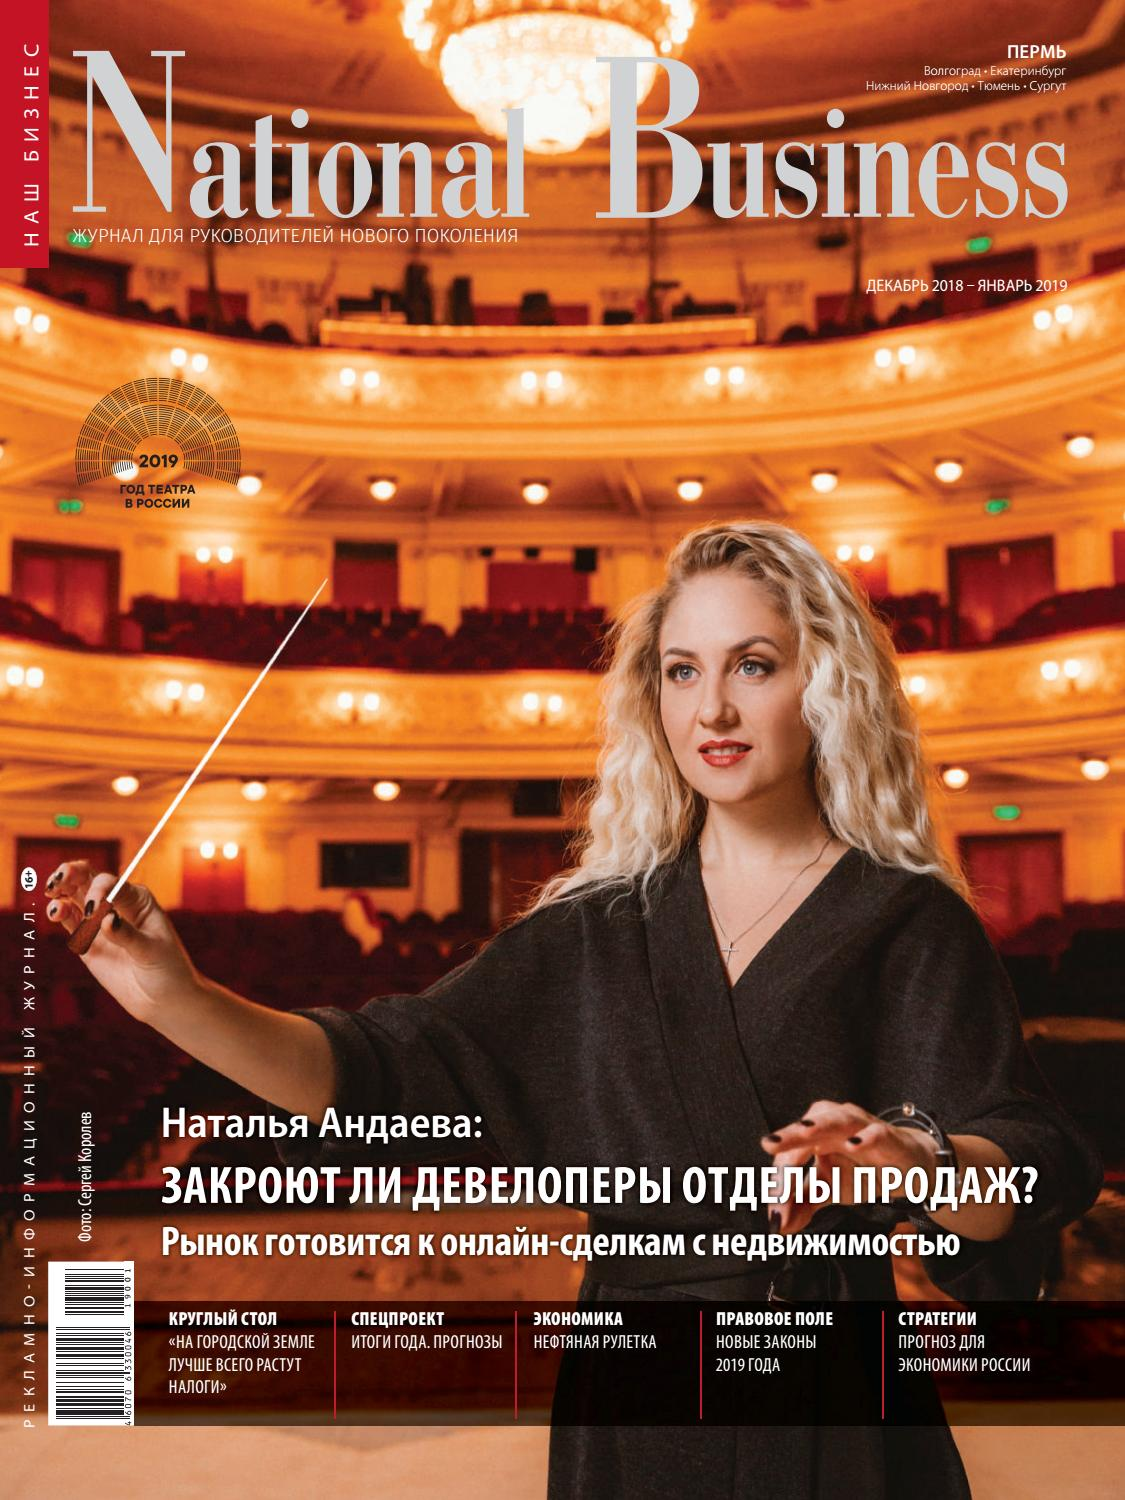 3f4fe0225 № 7 (120), Декабрь 2018 - Январь 2019 by National Business-Perm - issuu